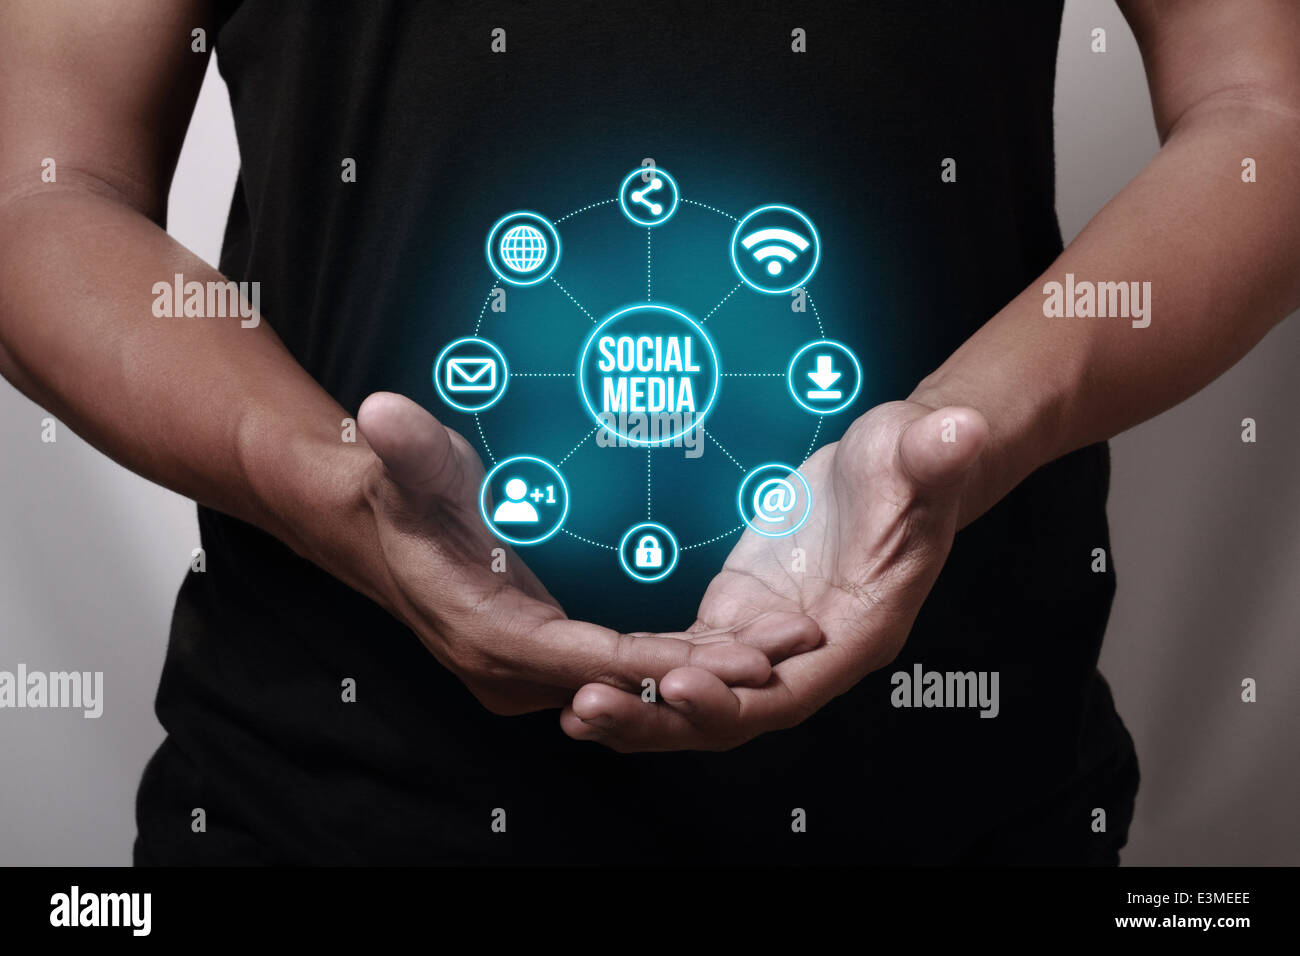 Hand showing social media icons. - Stock Image